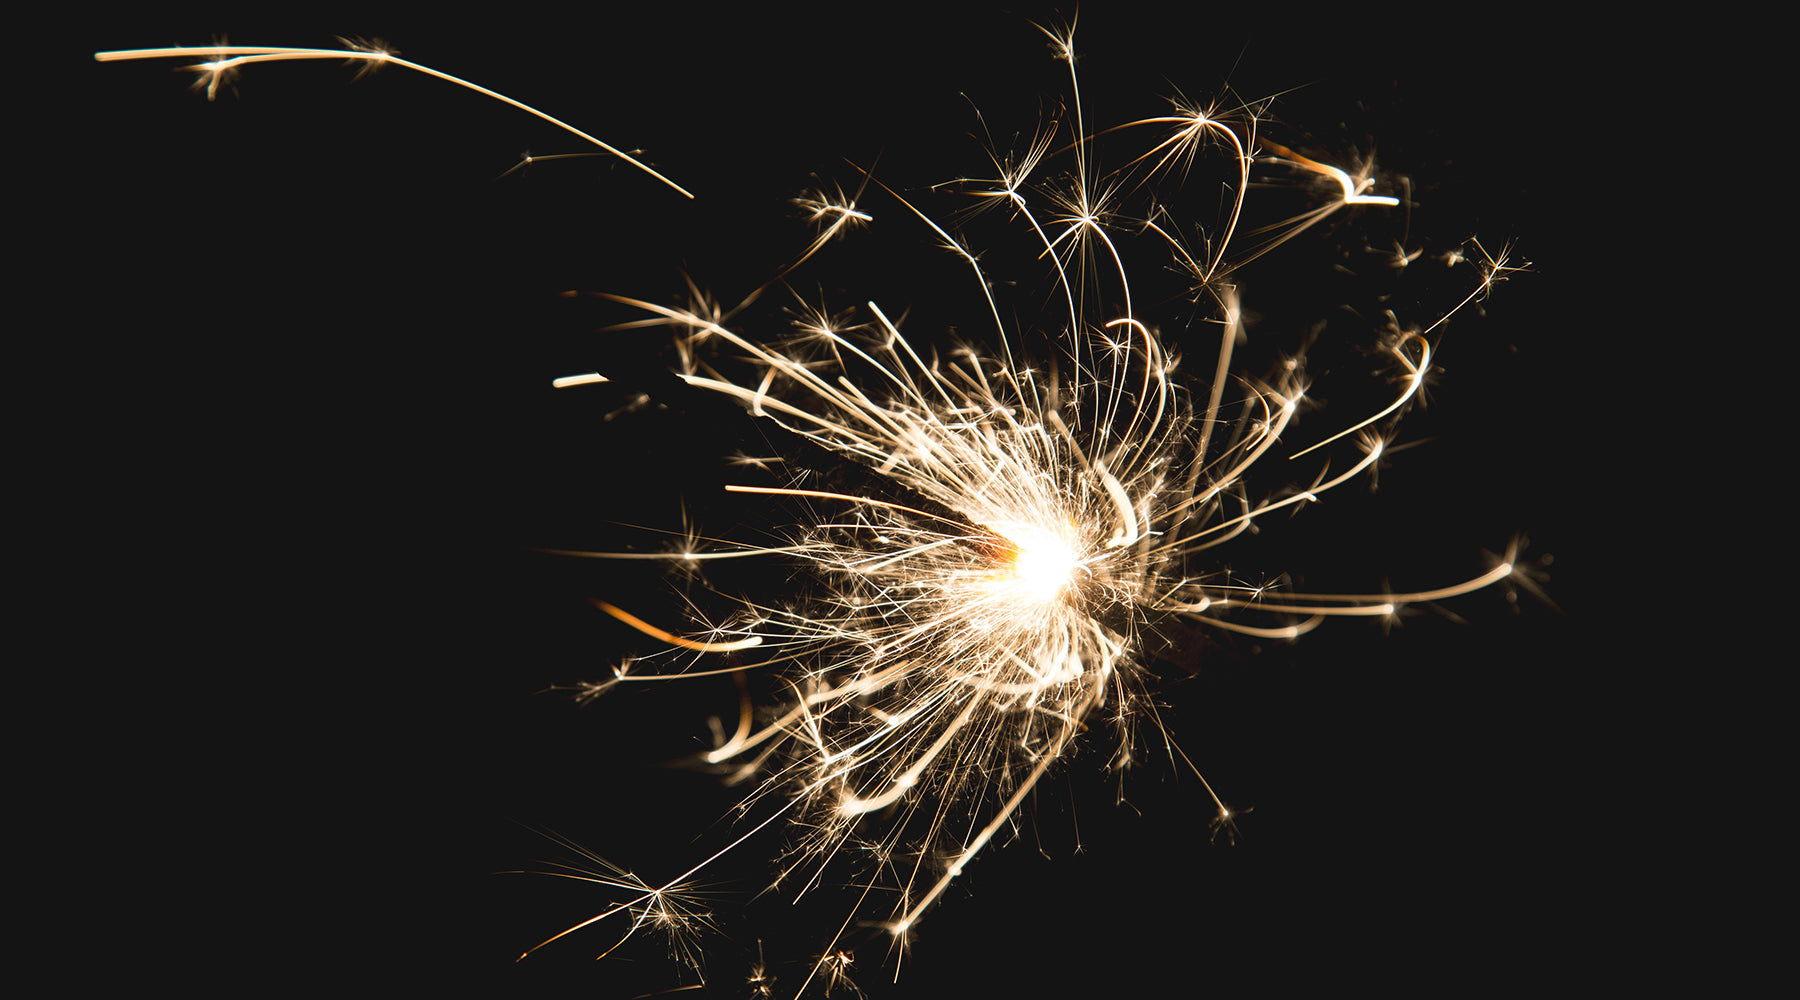 Lit sparkler on black background | Nikki Darling Australia